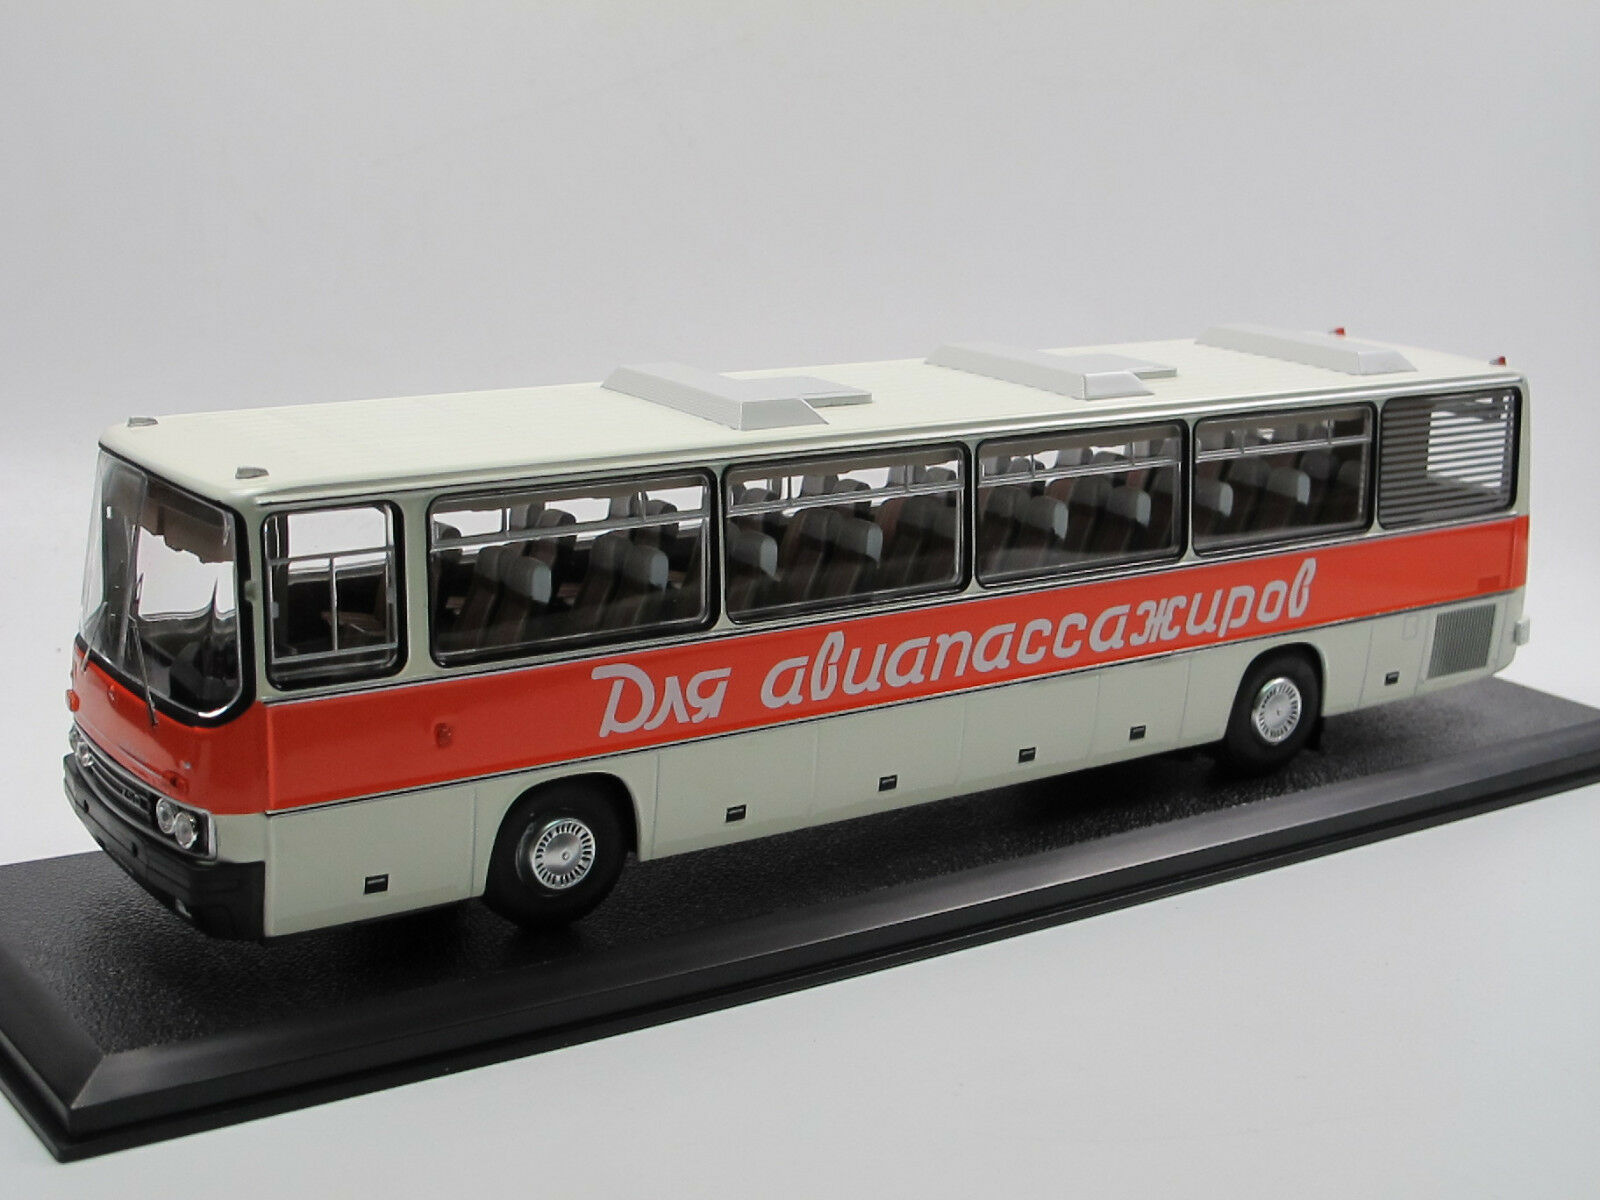 classic bus 1980 ikarus airport shuttle bus ussr ddr 1 43 ovp eur 120 00 picclick de. Black Bedroom Furniture Sets. Home Design Ideas